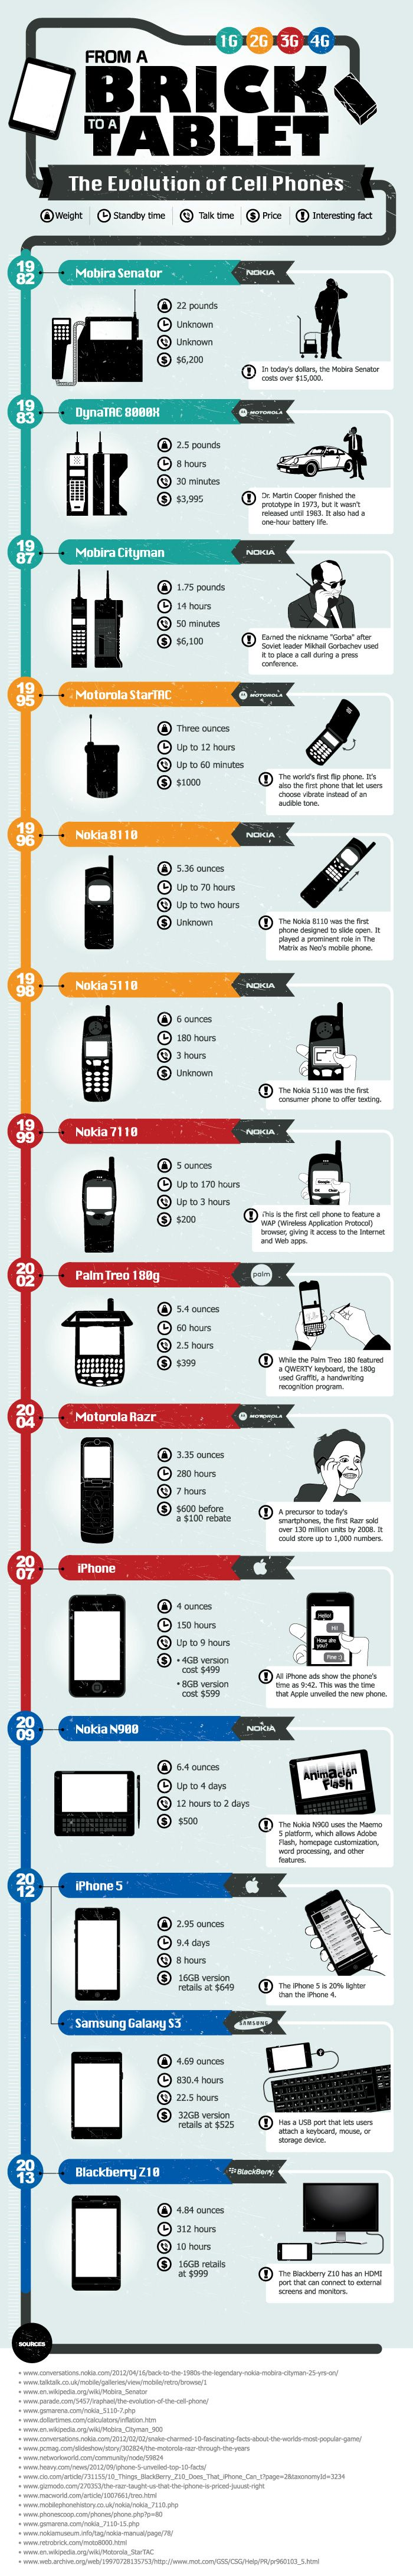 From a Brick to a Tablet – The Evolution of Cell Phones.  Today You Can Literally Build a Business on Your SmartPhone.